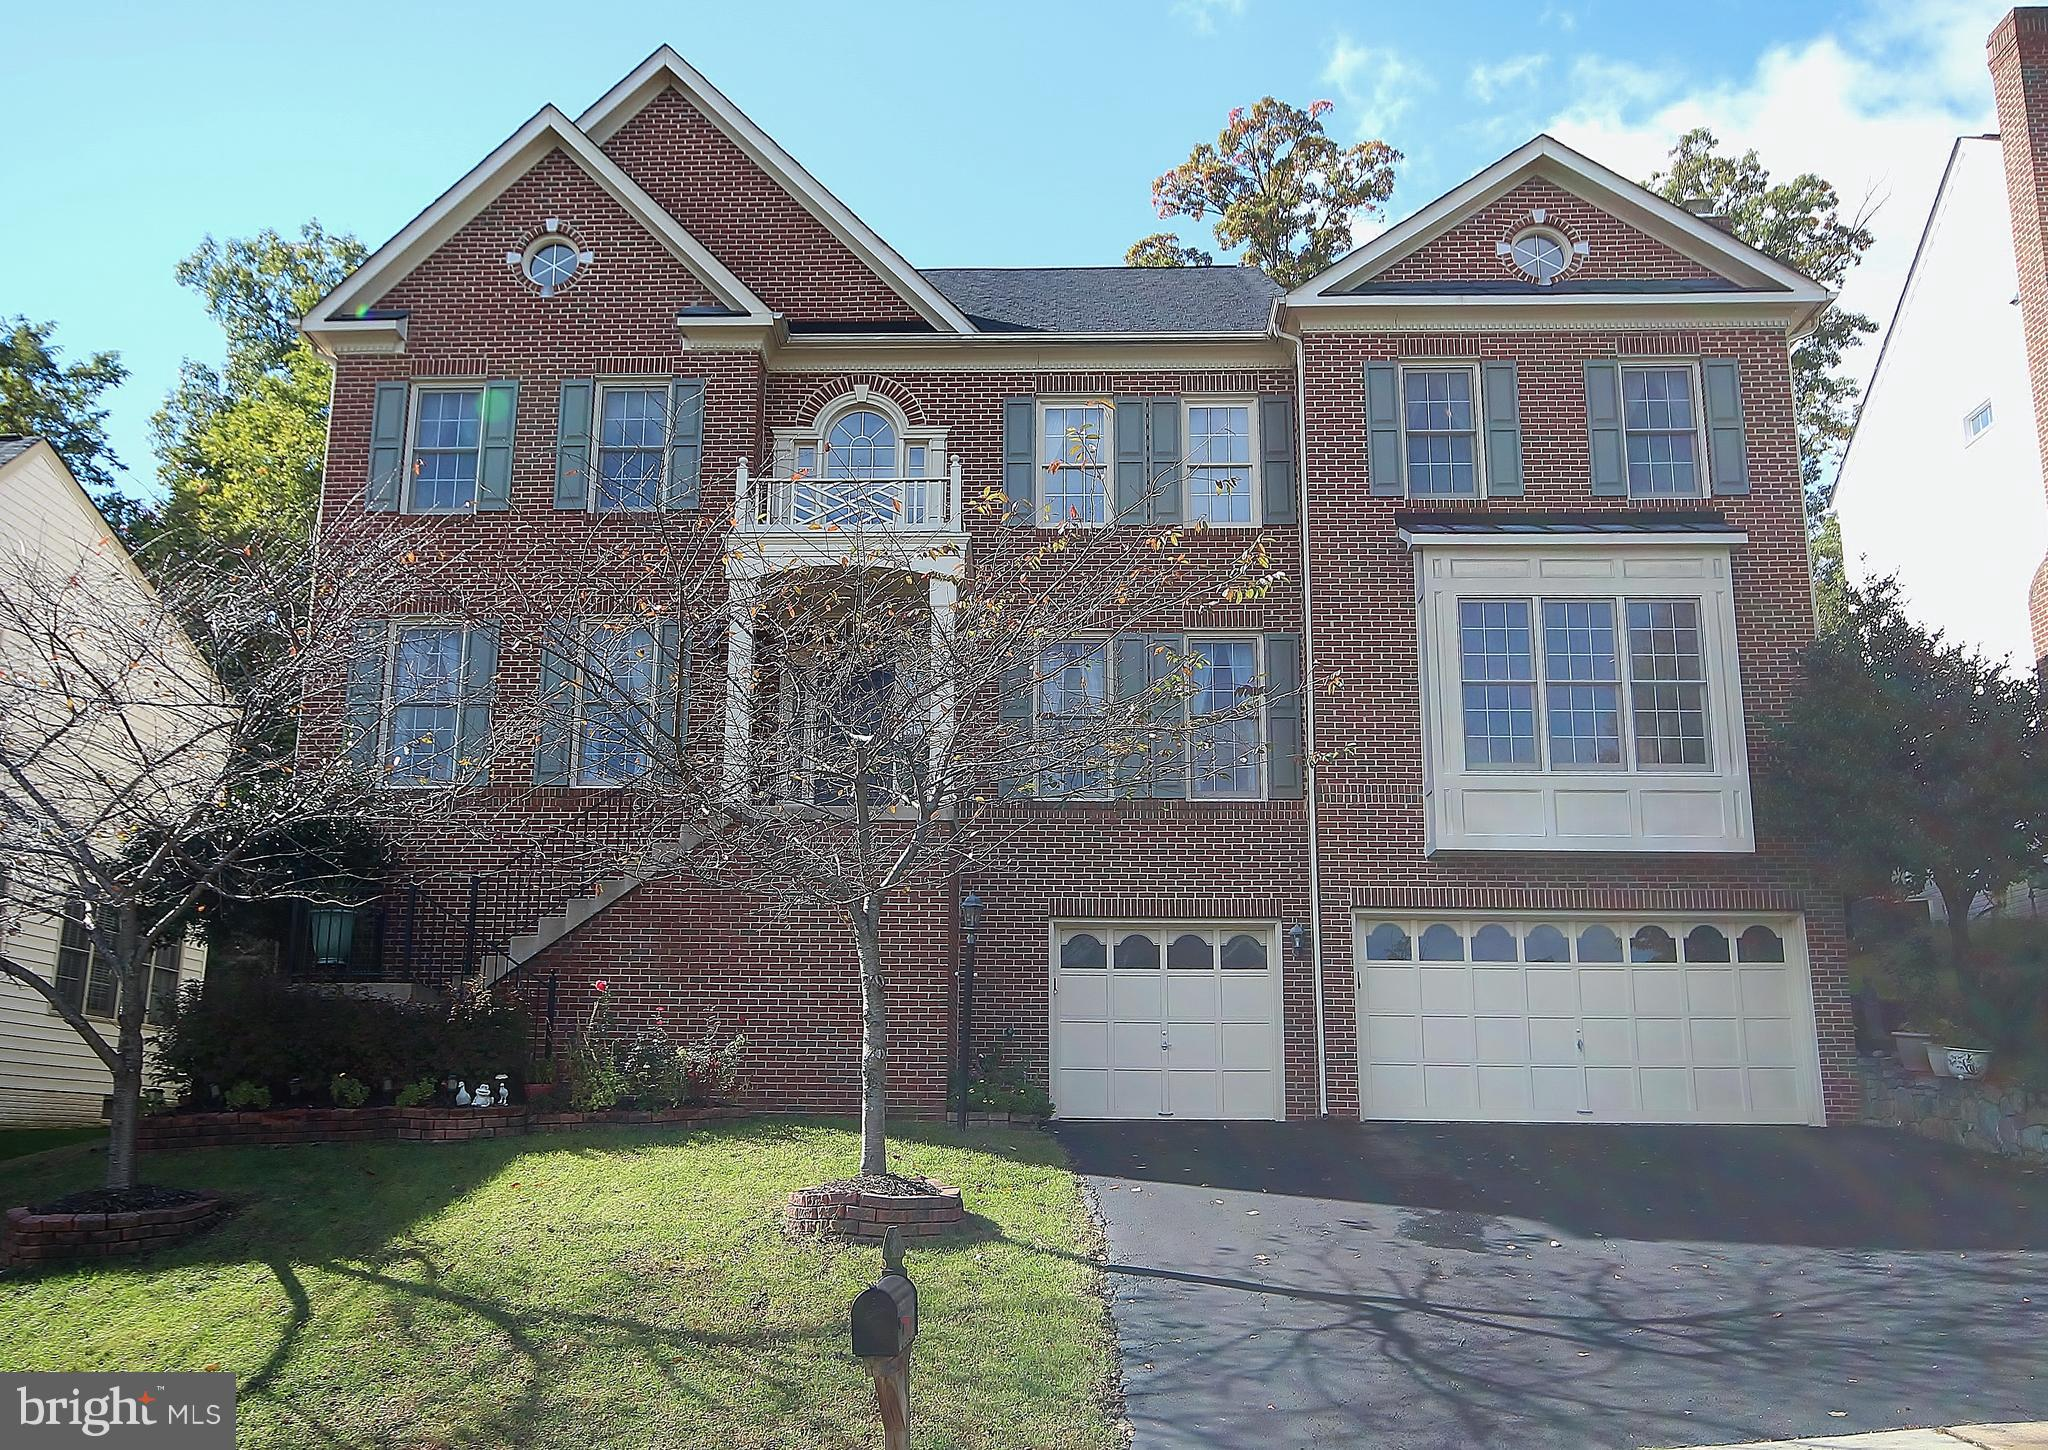 Gorgeous Craftmark home with gleaming hardwoods throughout main level. Updated kitchen with granite and new SSA in kitchen. Formal living and dining rooms. Family and sunroom off the kitchen. 4 huge levels fill this spacious home. Nice outdoor space with deck compliments the excellent entertainment flow of this superior home. Lower level is ready for the party! Close to Metro, restaurants, shops.